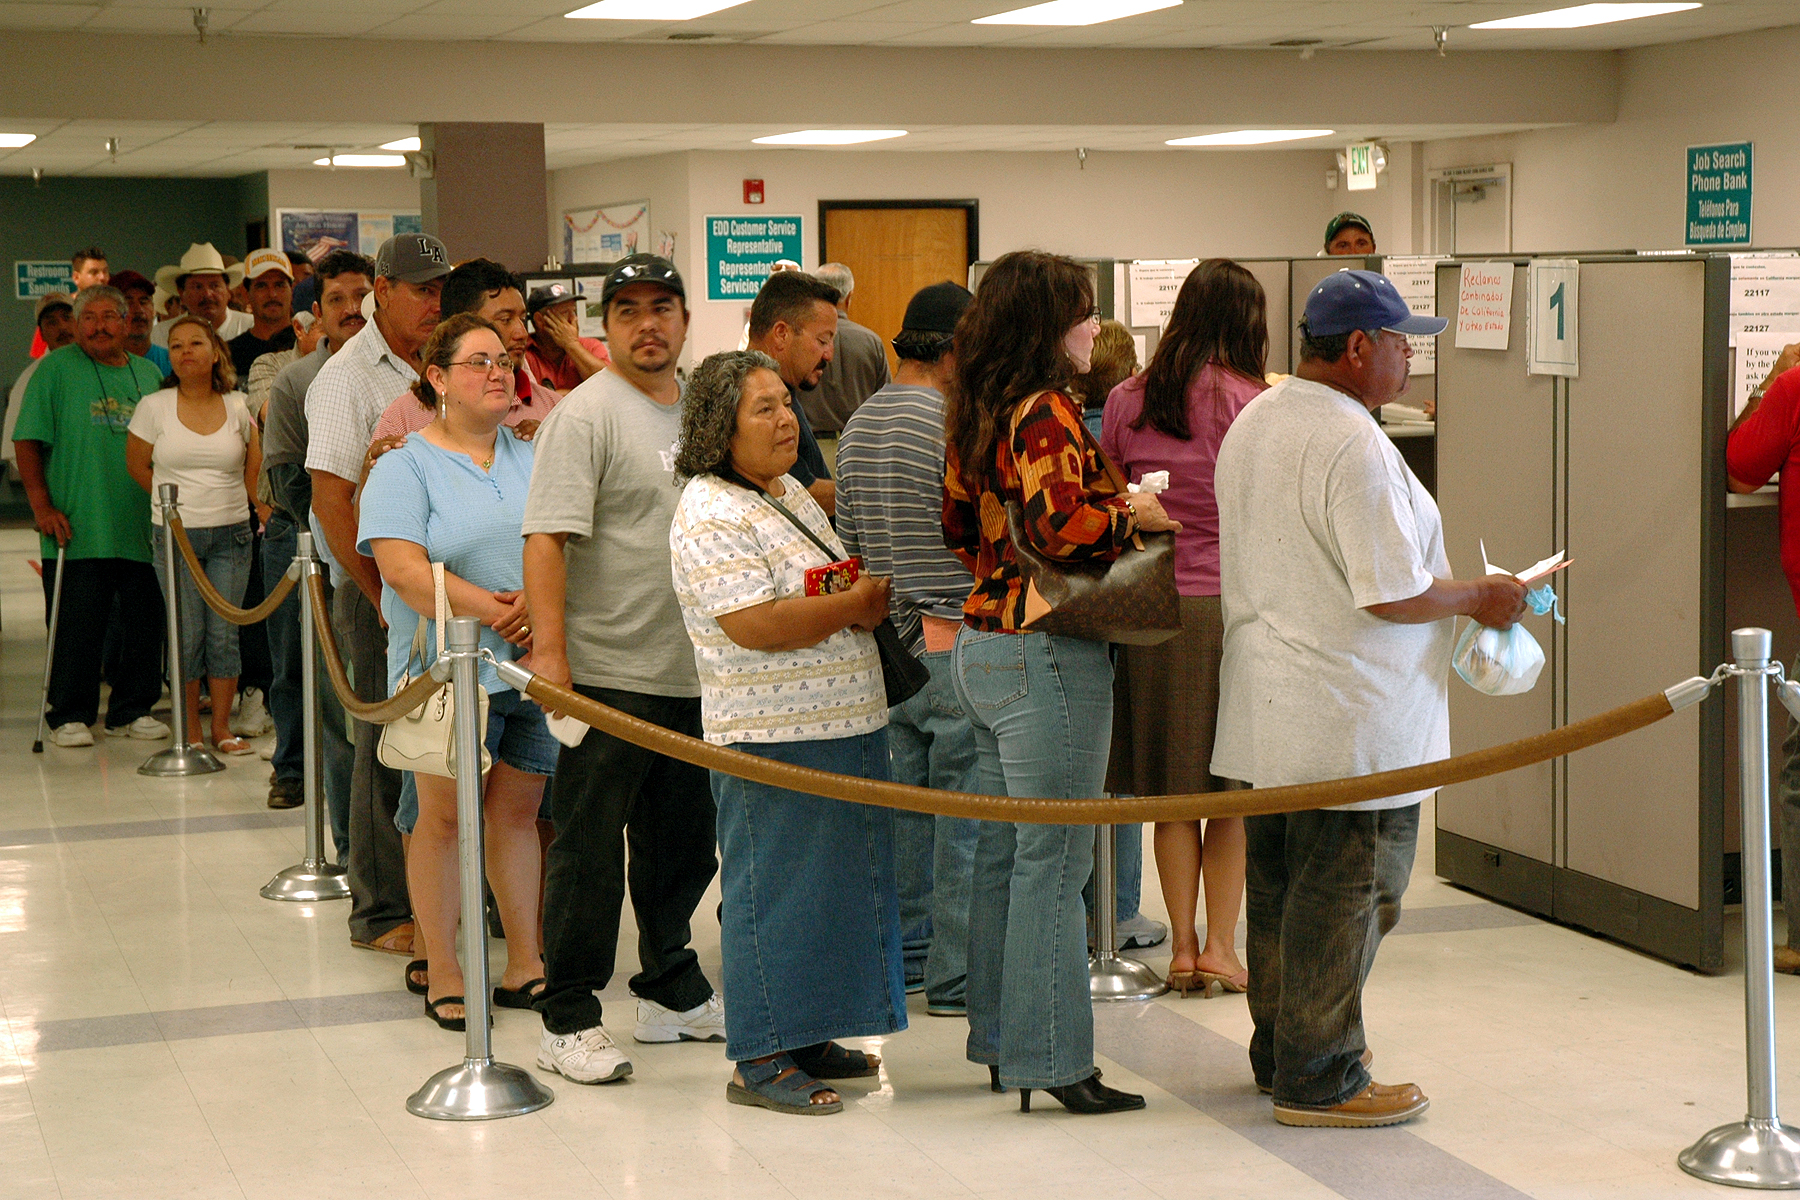 FEMA_-_29783_-_Workers_unemployed_by_the_freeze_in_California.jpg